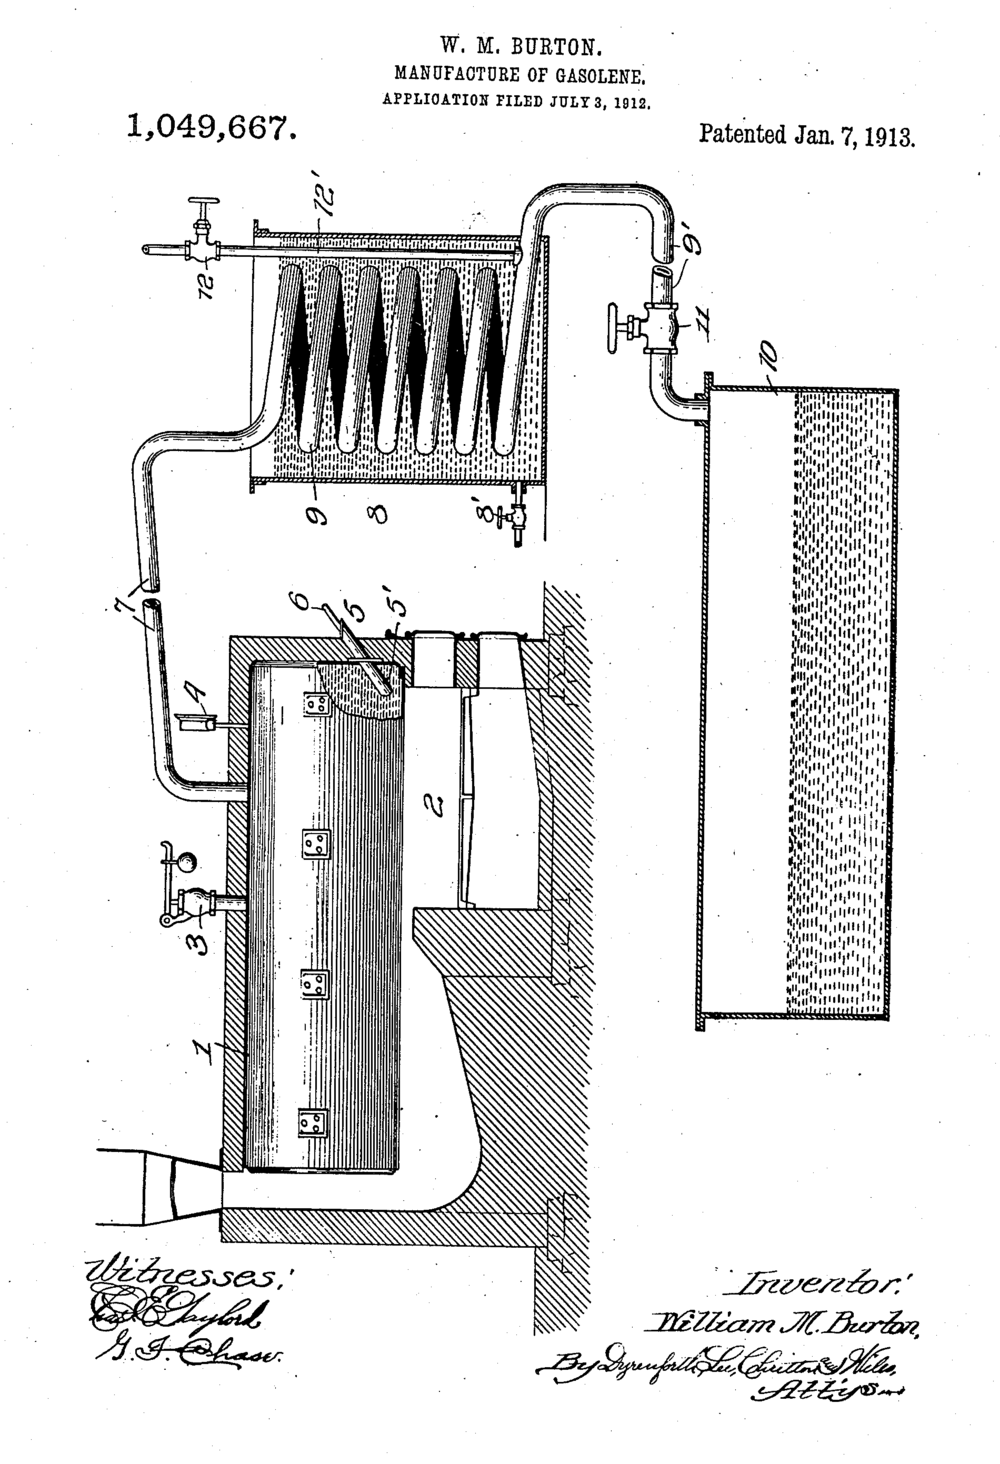 Manufacture of gasoline [sic], US patent 1049667, William M. Burton, 1913. Image source: Patent #: US001049667 (accessed from United States Patent and Trademark Office) by William M. Burton is licensed under Public Domain Mark 1.0